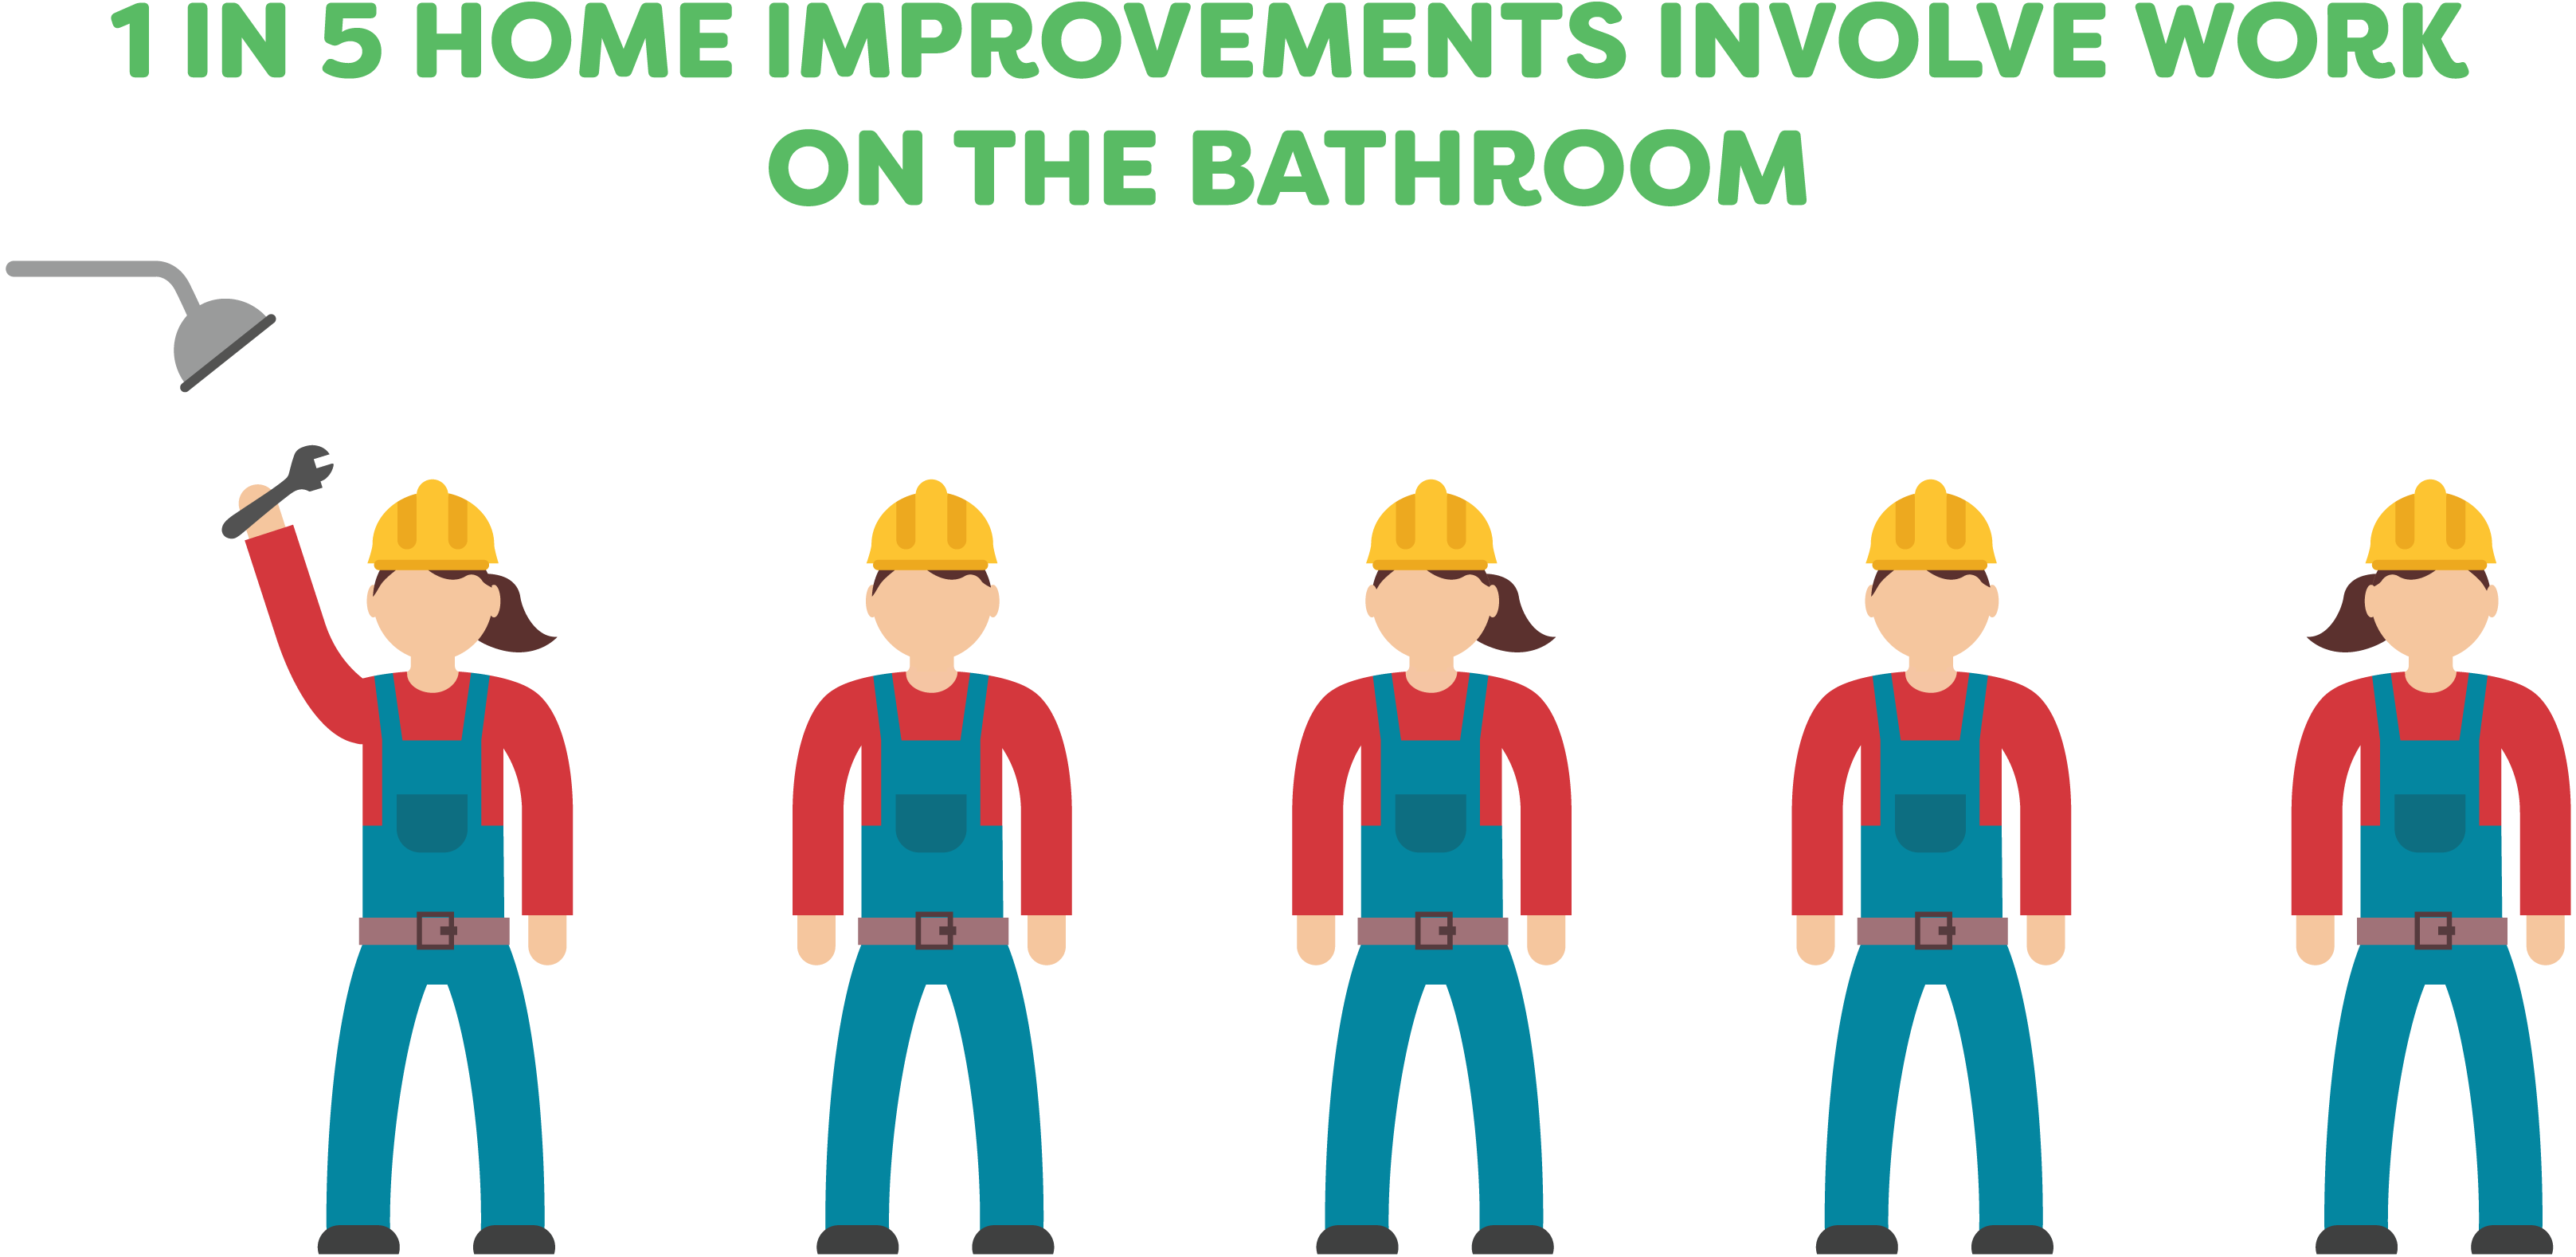 DIY? - 1 in 5 Home Improvements Involve Work On The Bathroom - When, What and DIY